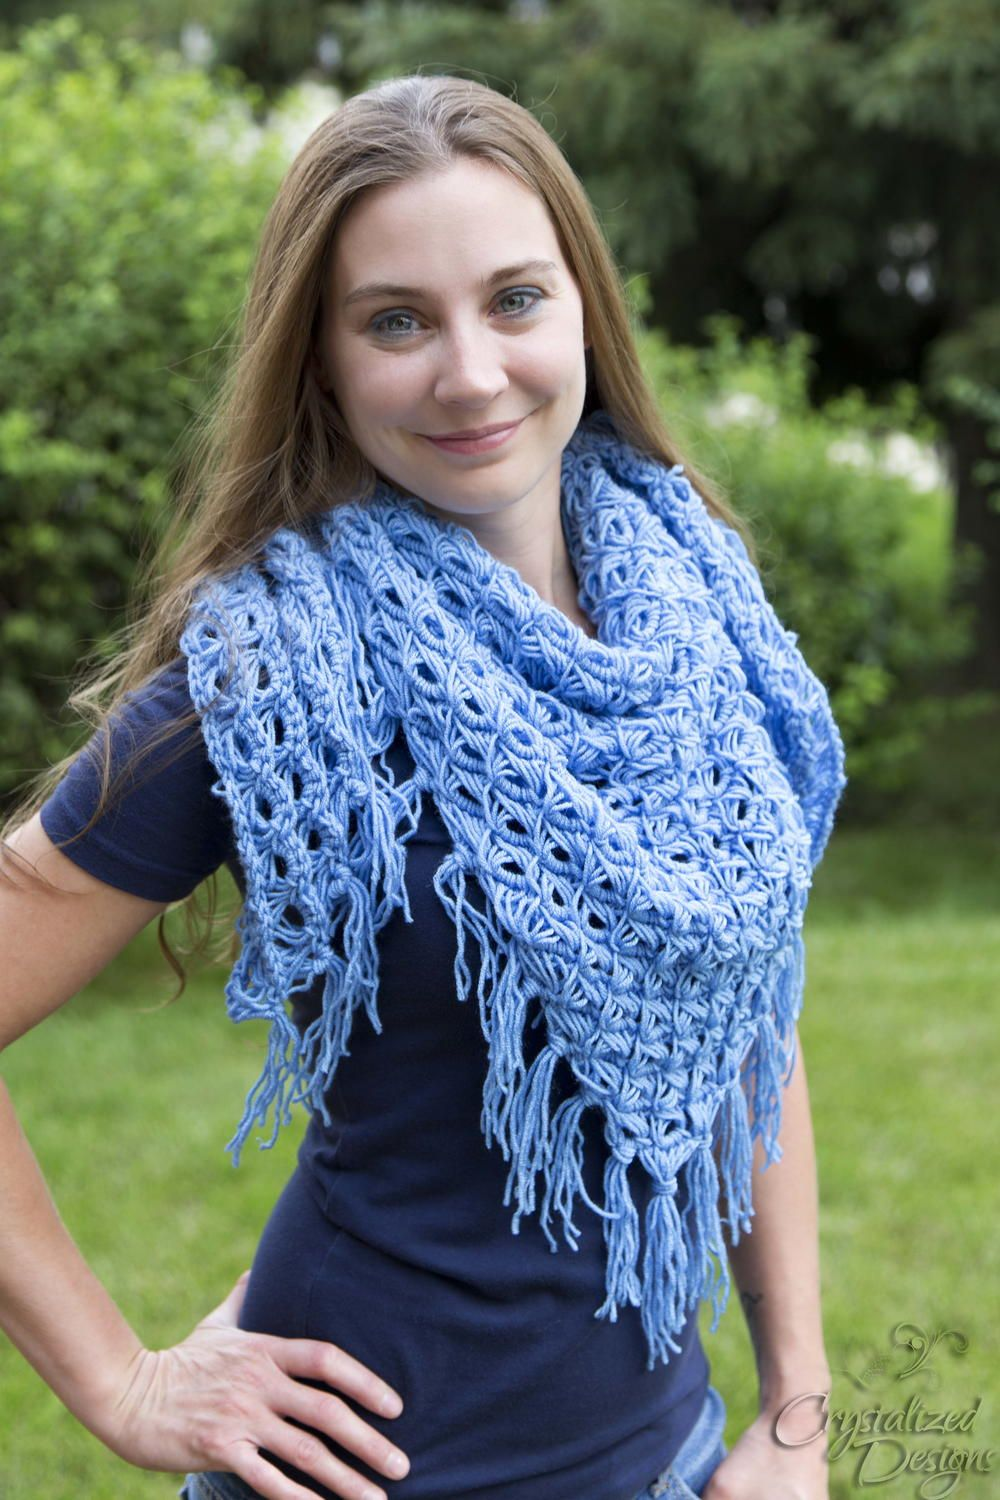 Broomstick Lace Triangle Shawl | Broomstick lace, Shawl and Crochet